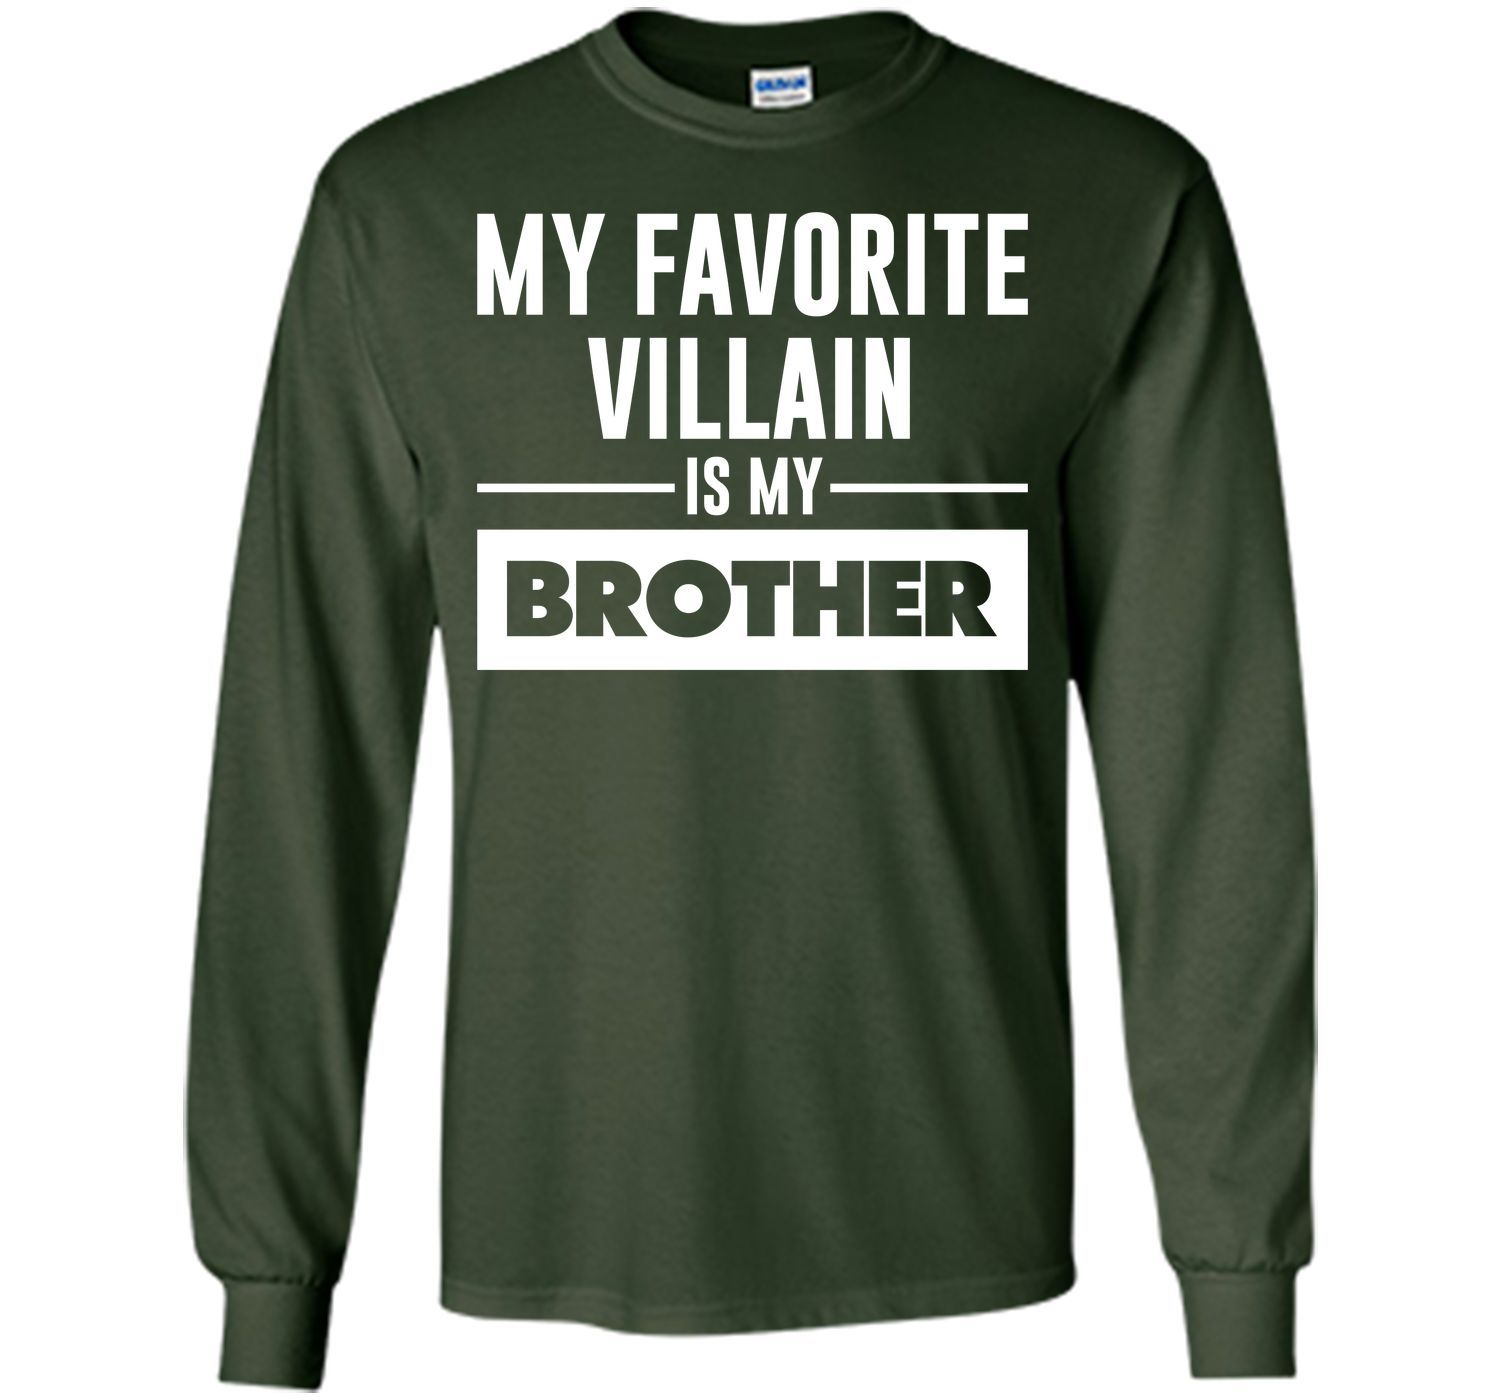 My Favorite Villain is My Brother Funny Graphic T-shirt T-Shirt